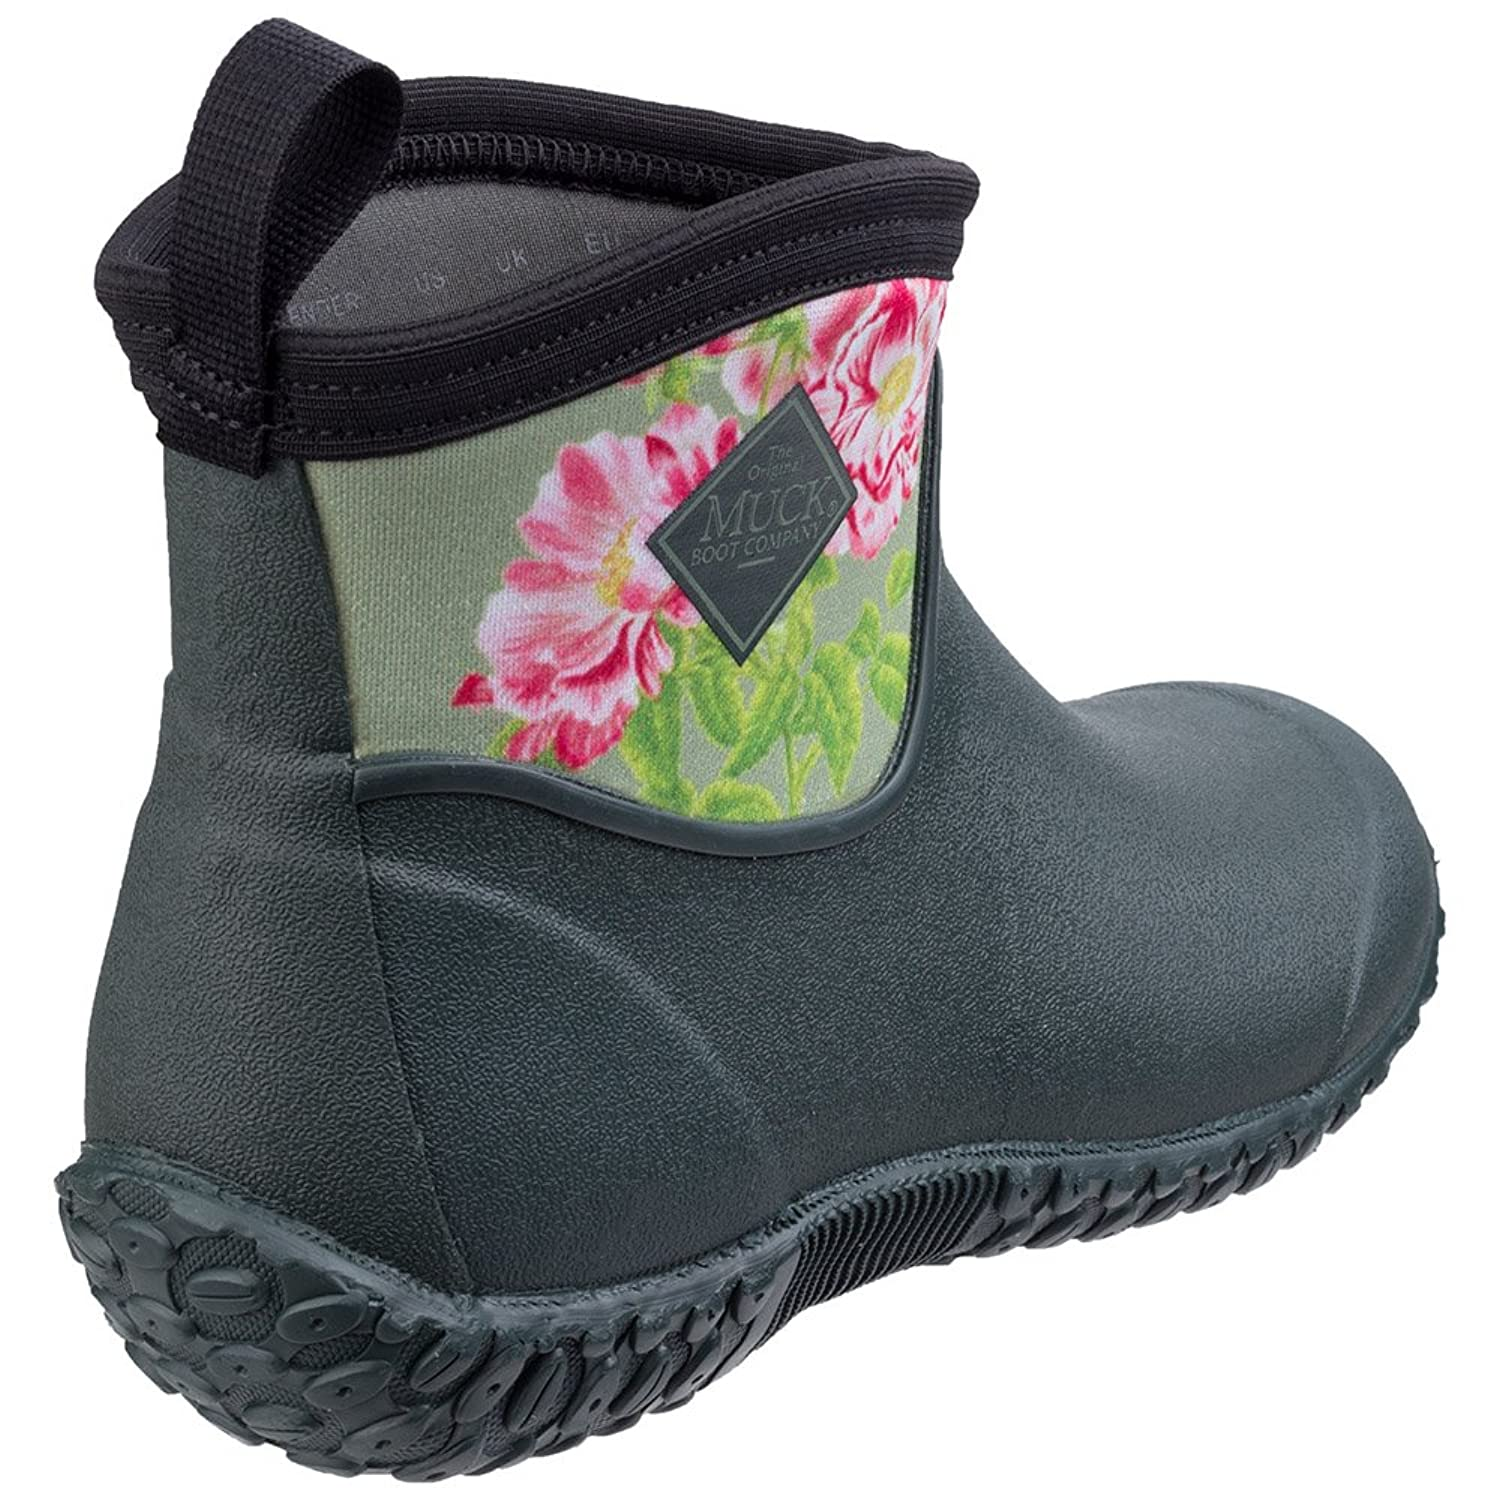 Muck Boot Womens Muckster II Ankle Rosa Gallica: Amazon.co.uk: Shoes & Bags